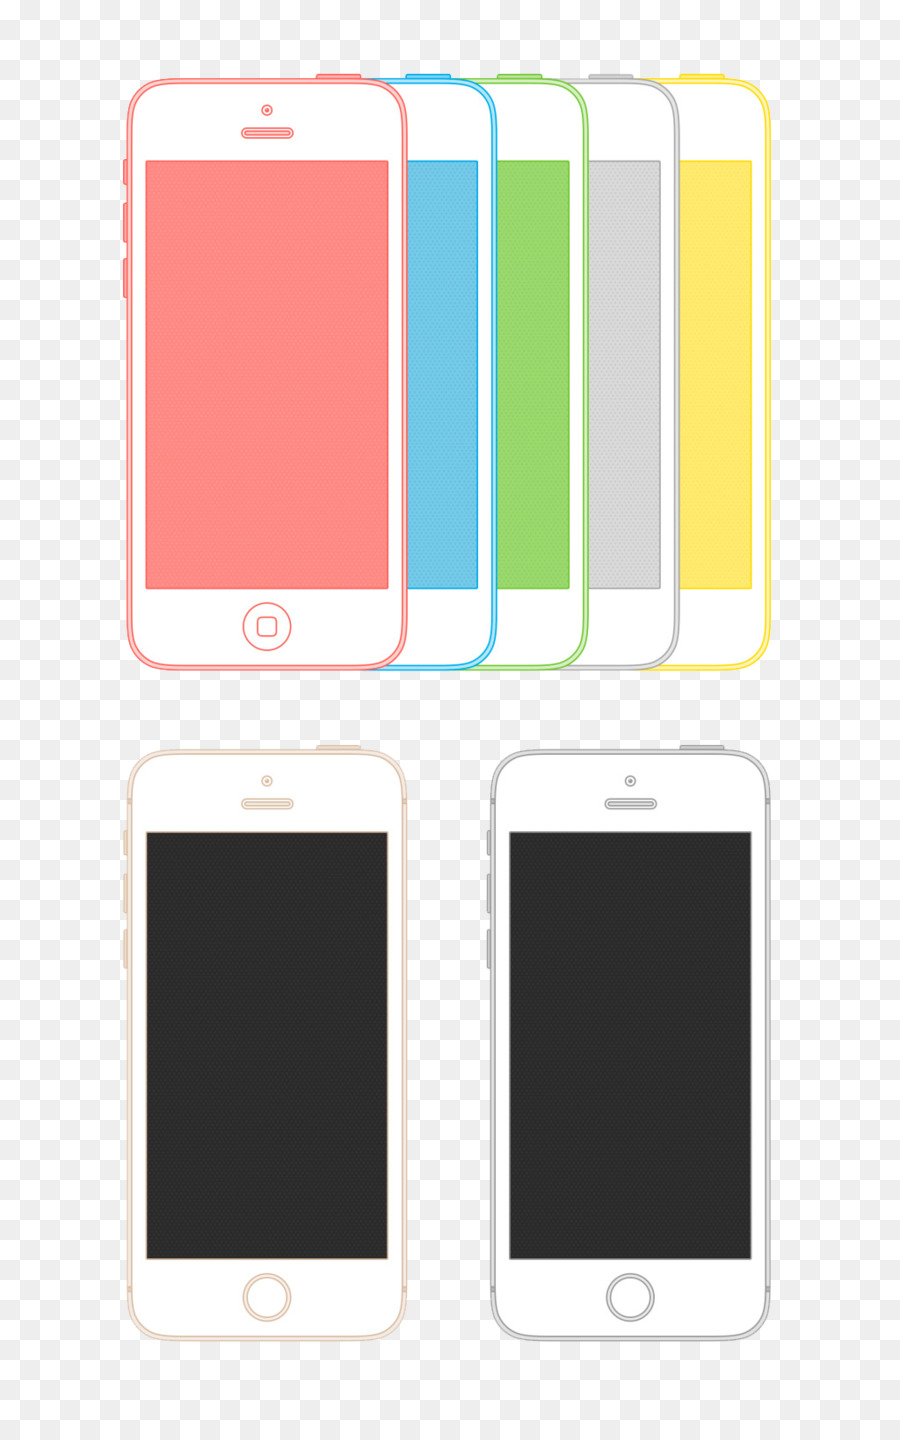 medium resolution of iphone 5s iphone 5 iphone 6 smartphone mobile phone accessories png